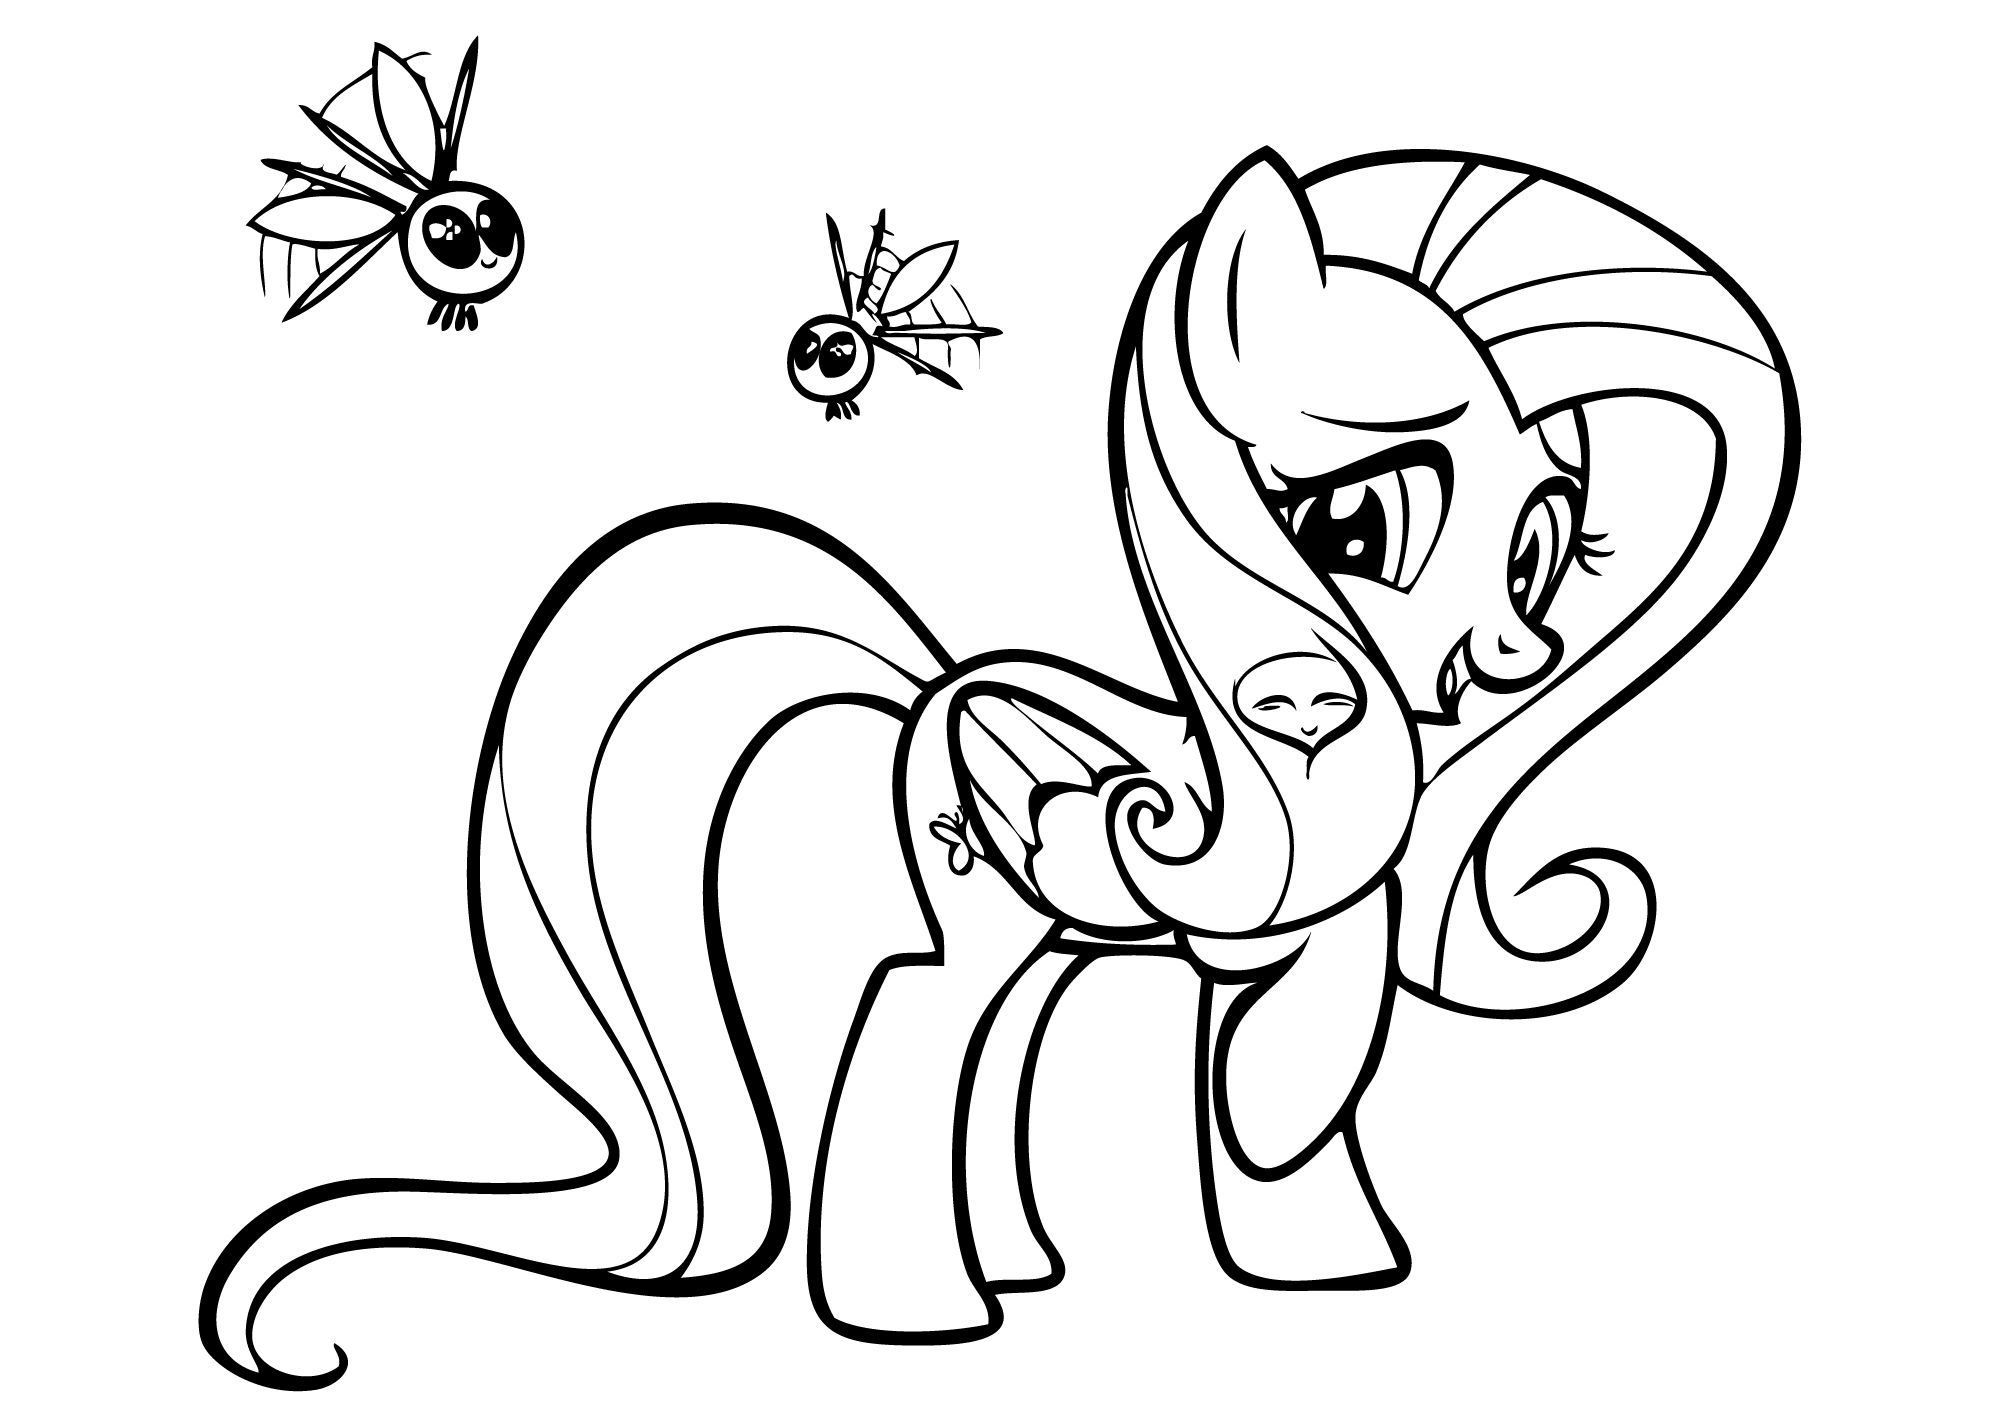 fluttershy coloring pages download fluttershy my little pony coloring for free pages coloring fluttershy